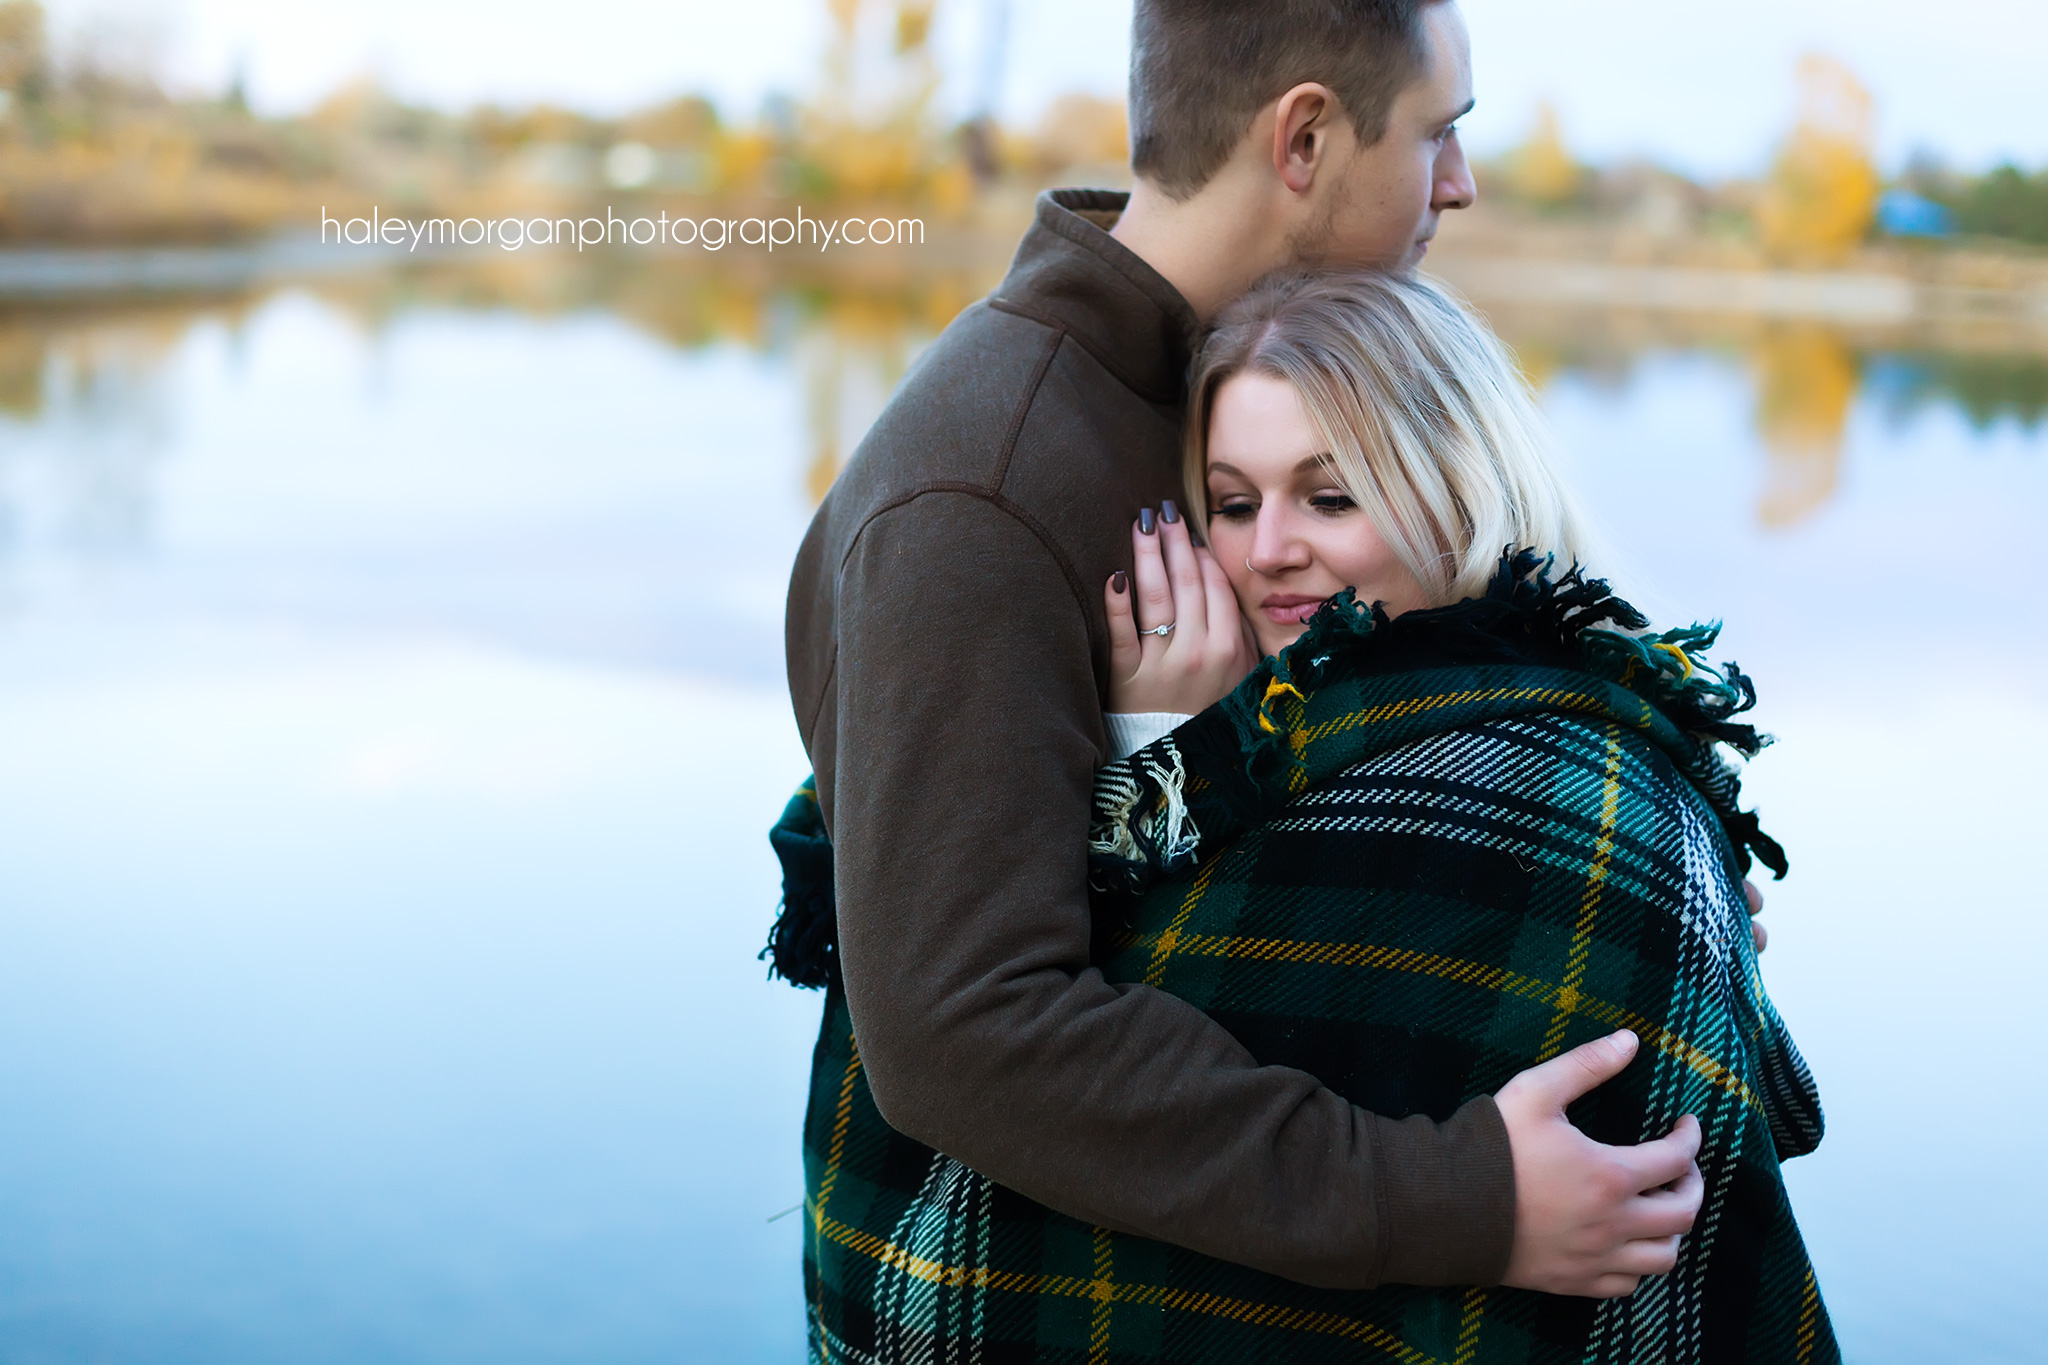 Denver Engagement Photographer, Denver Wedding Photographer, Denver Wedding Videographer, Denver Photographer, Golden Ponds Photographer, Golden Ponds Longmont, Golden Ponds Photoshoot, Golden Ponds Engagement Session, Golden Ponds Photography, Longmont Photographer, Longmont Photography, Haley Morgan Photography, Colorado Wedding Photographer